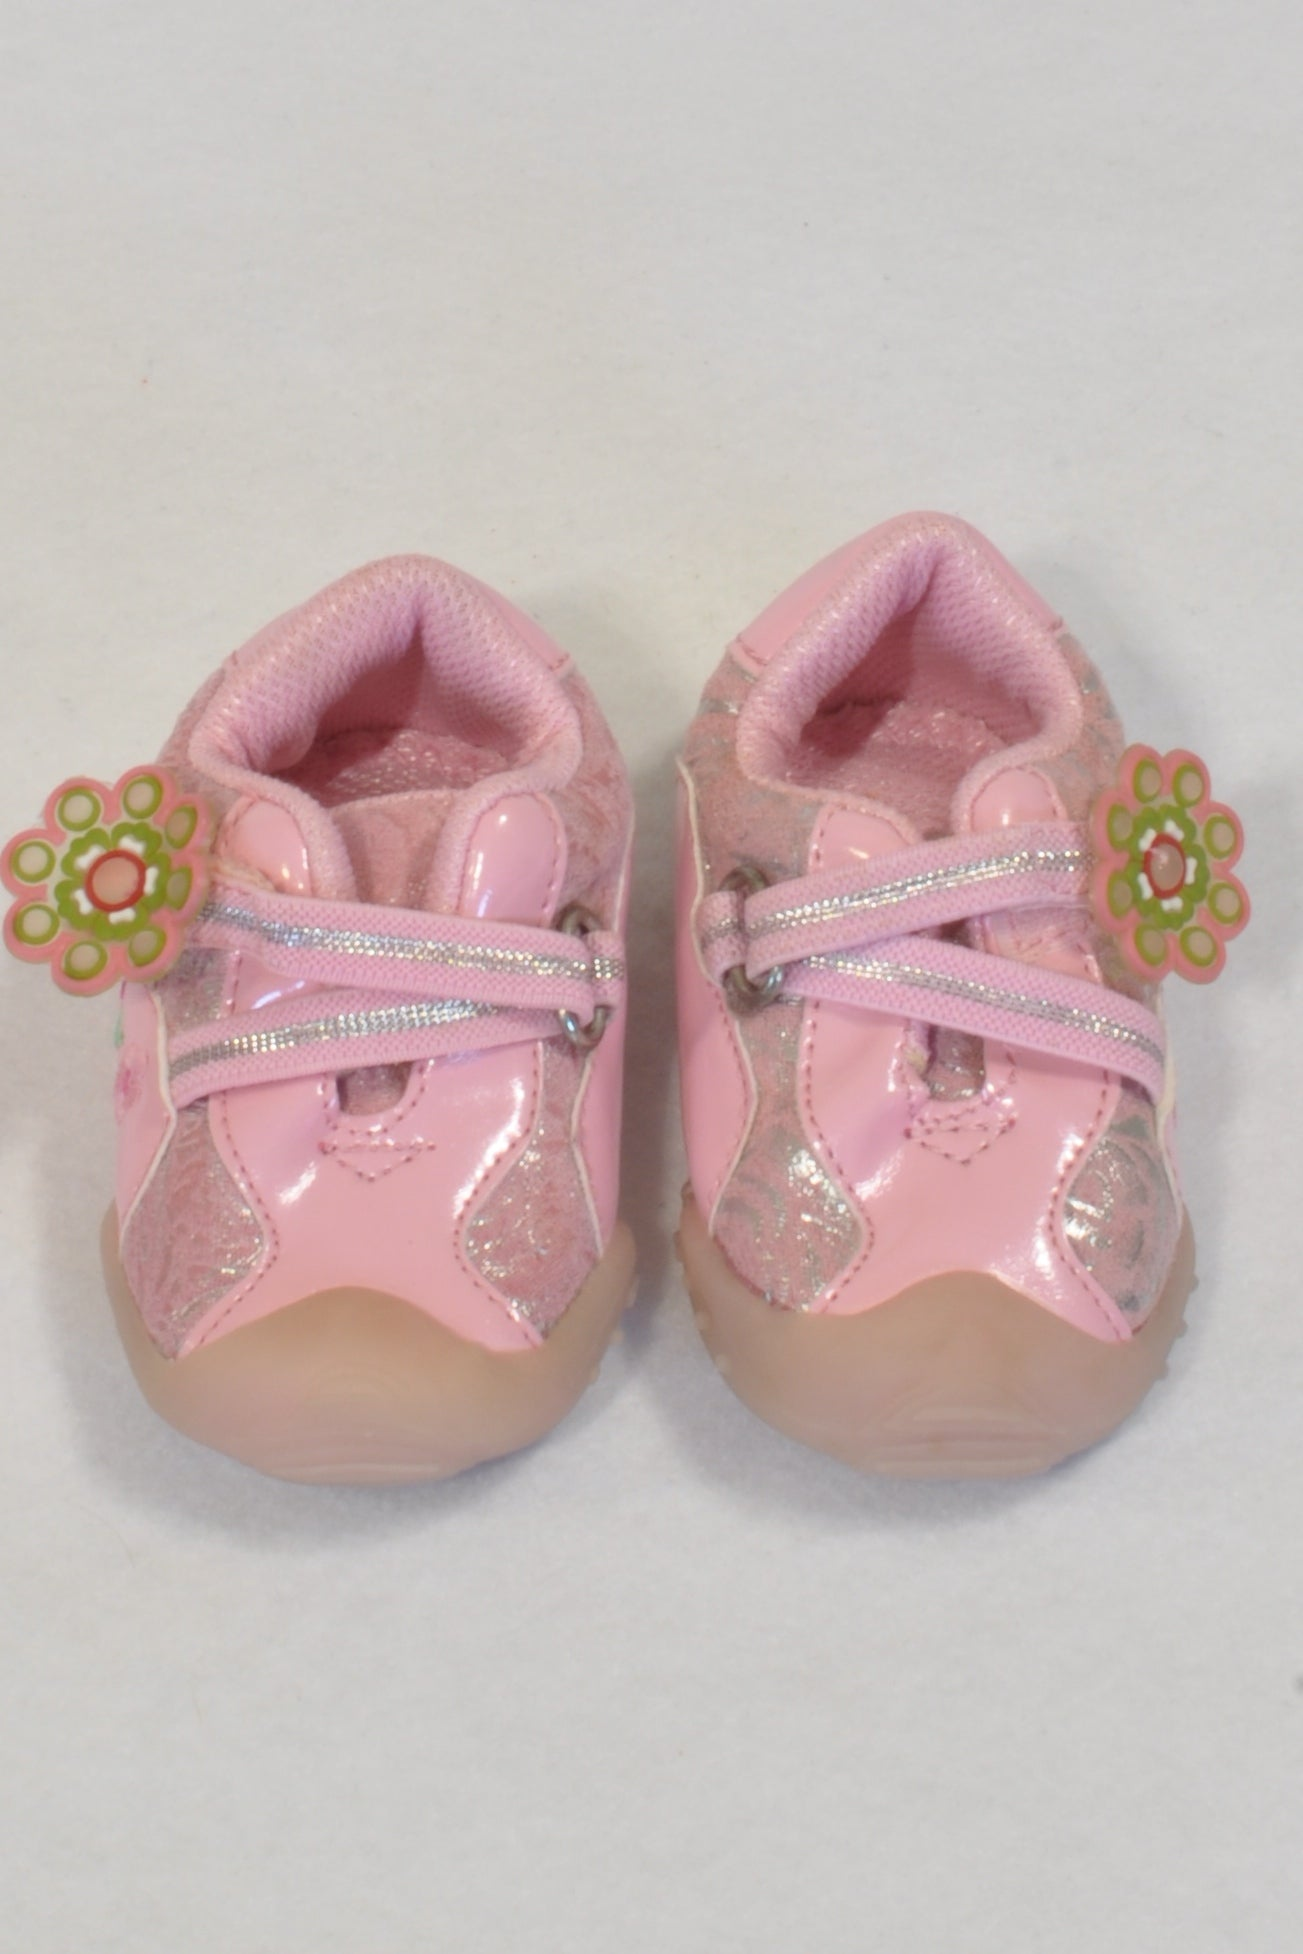 New Woolworths Pink Flower Size 2 Tekkies Girls 6-9 months